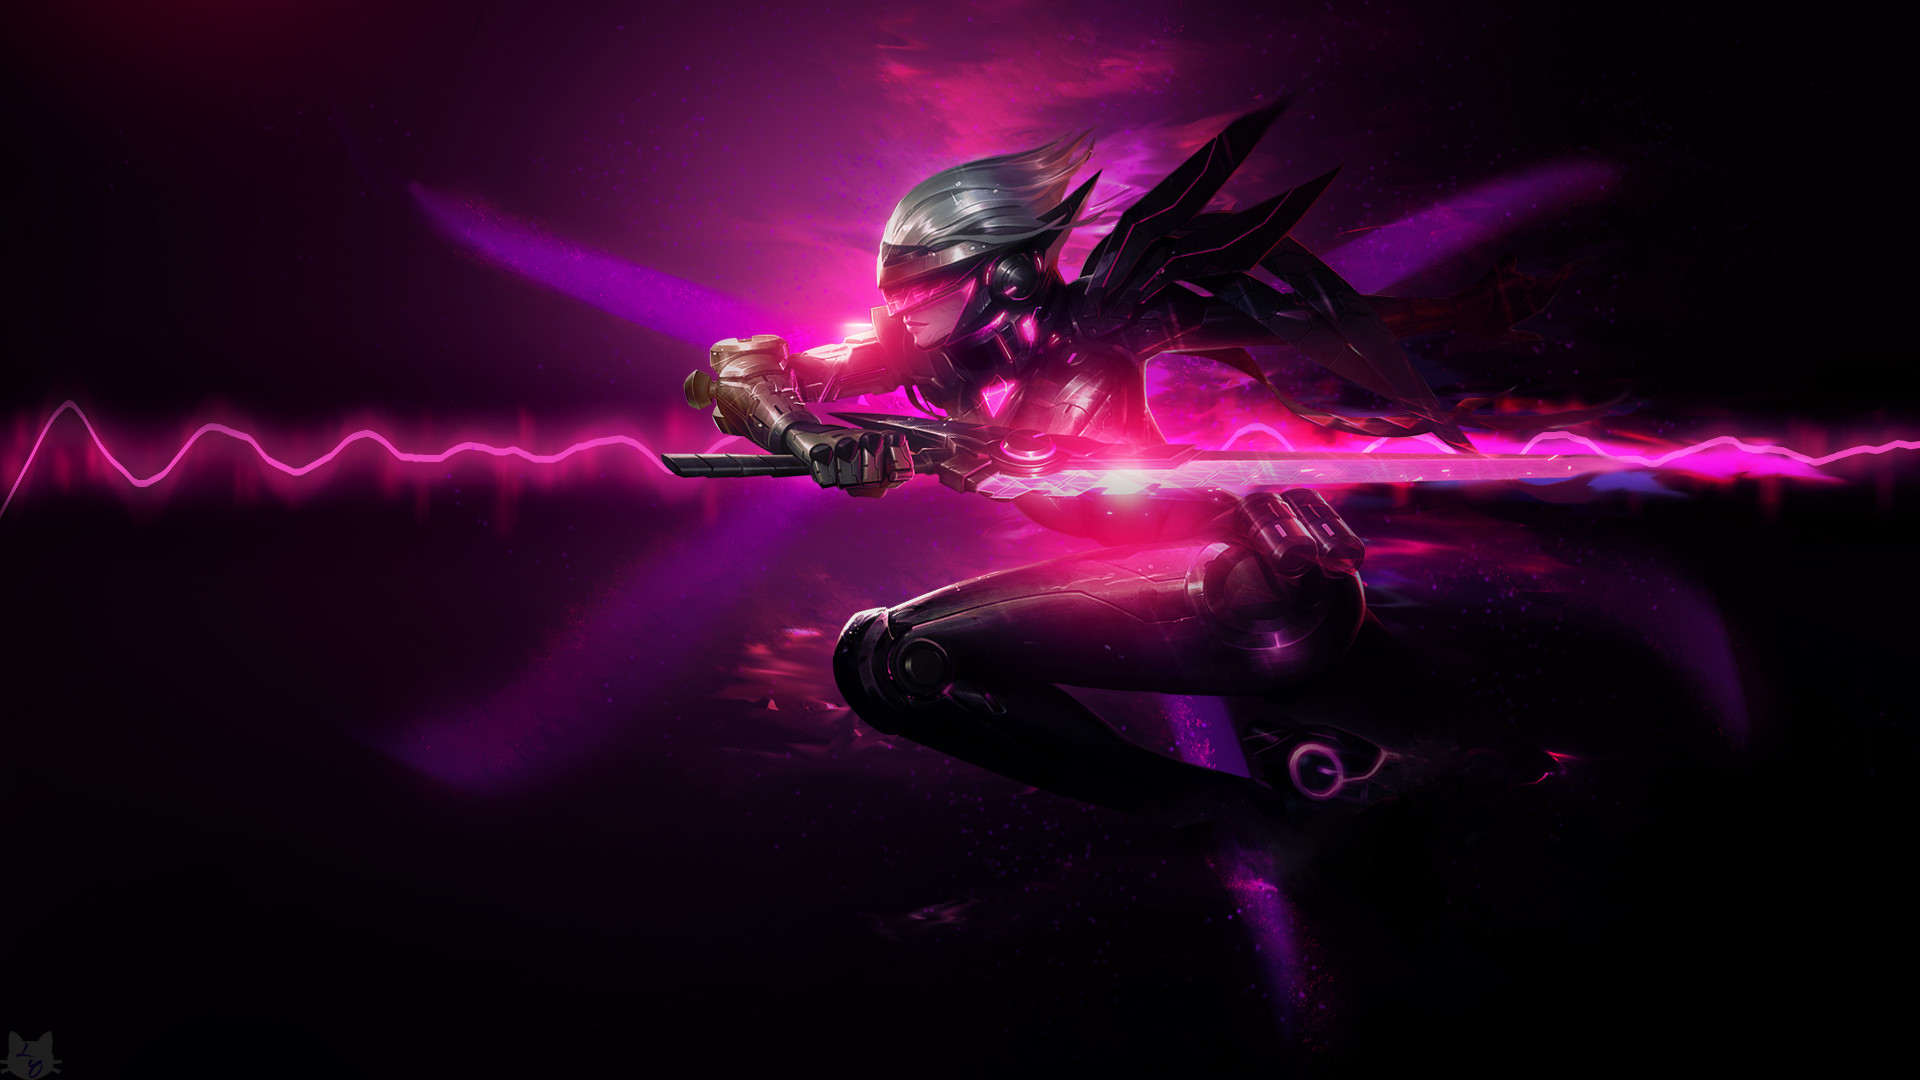 1920x1080 Project Fiora League Of Legends Wallpapers HD